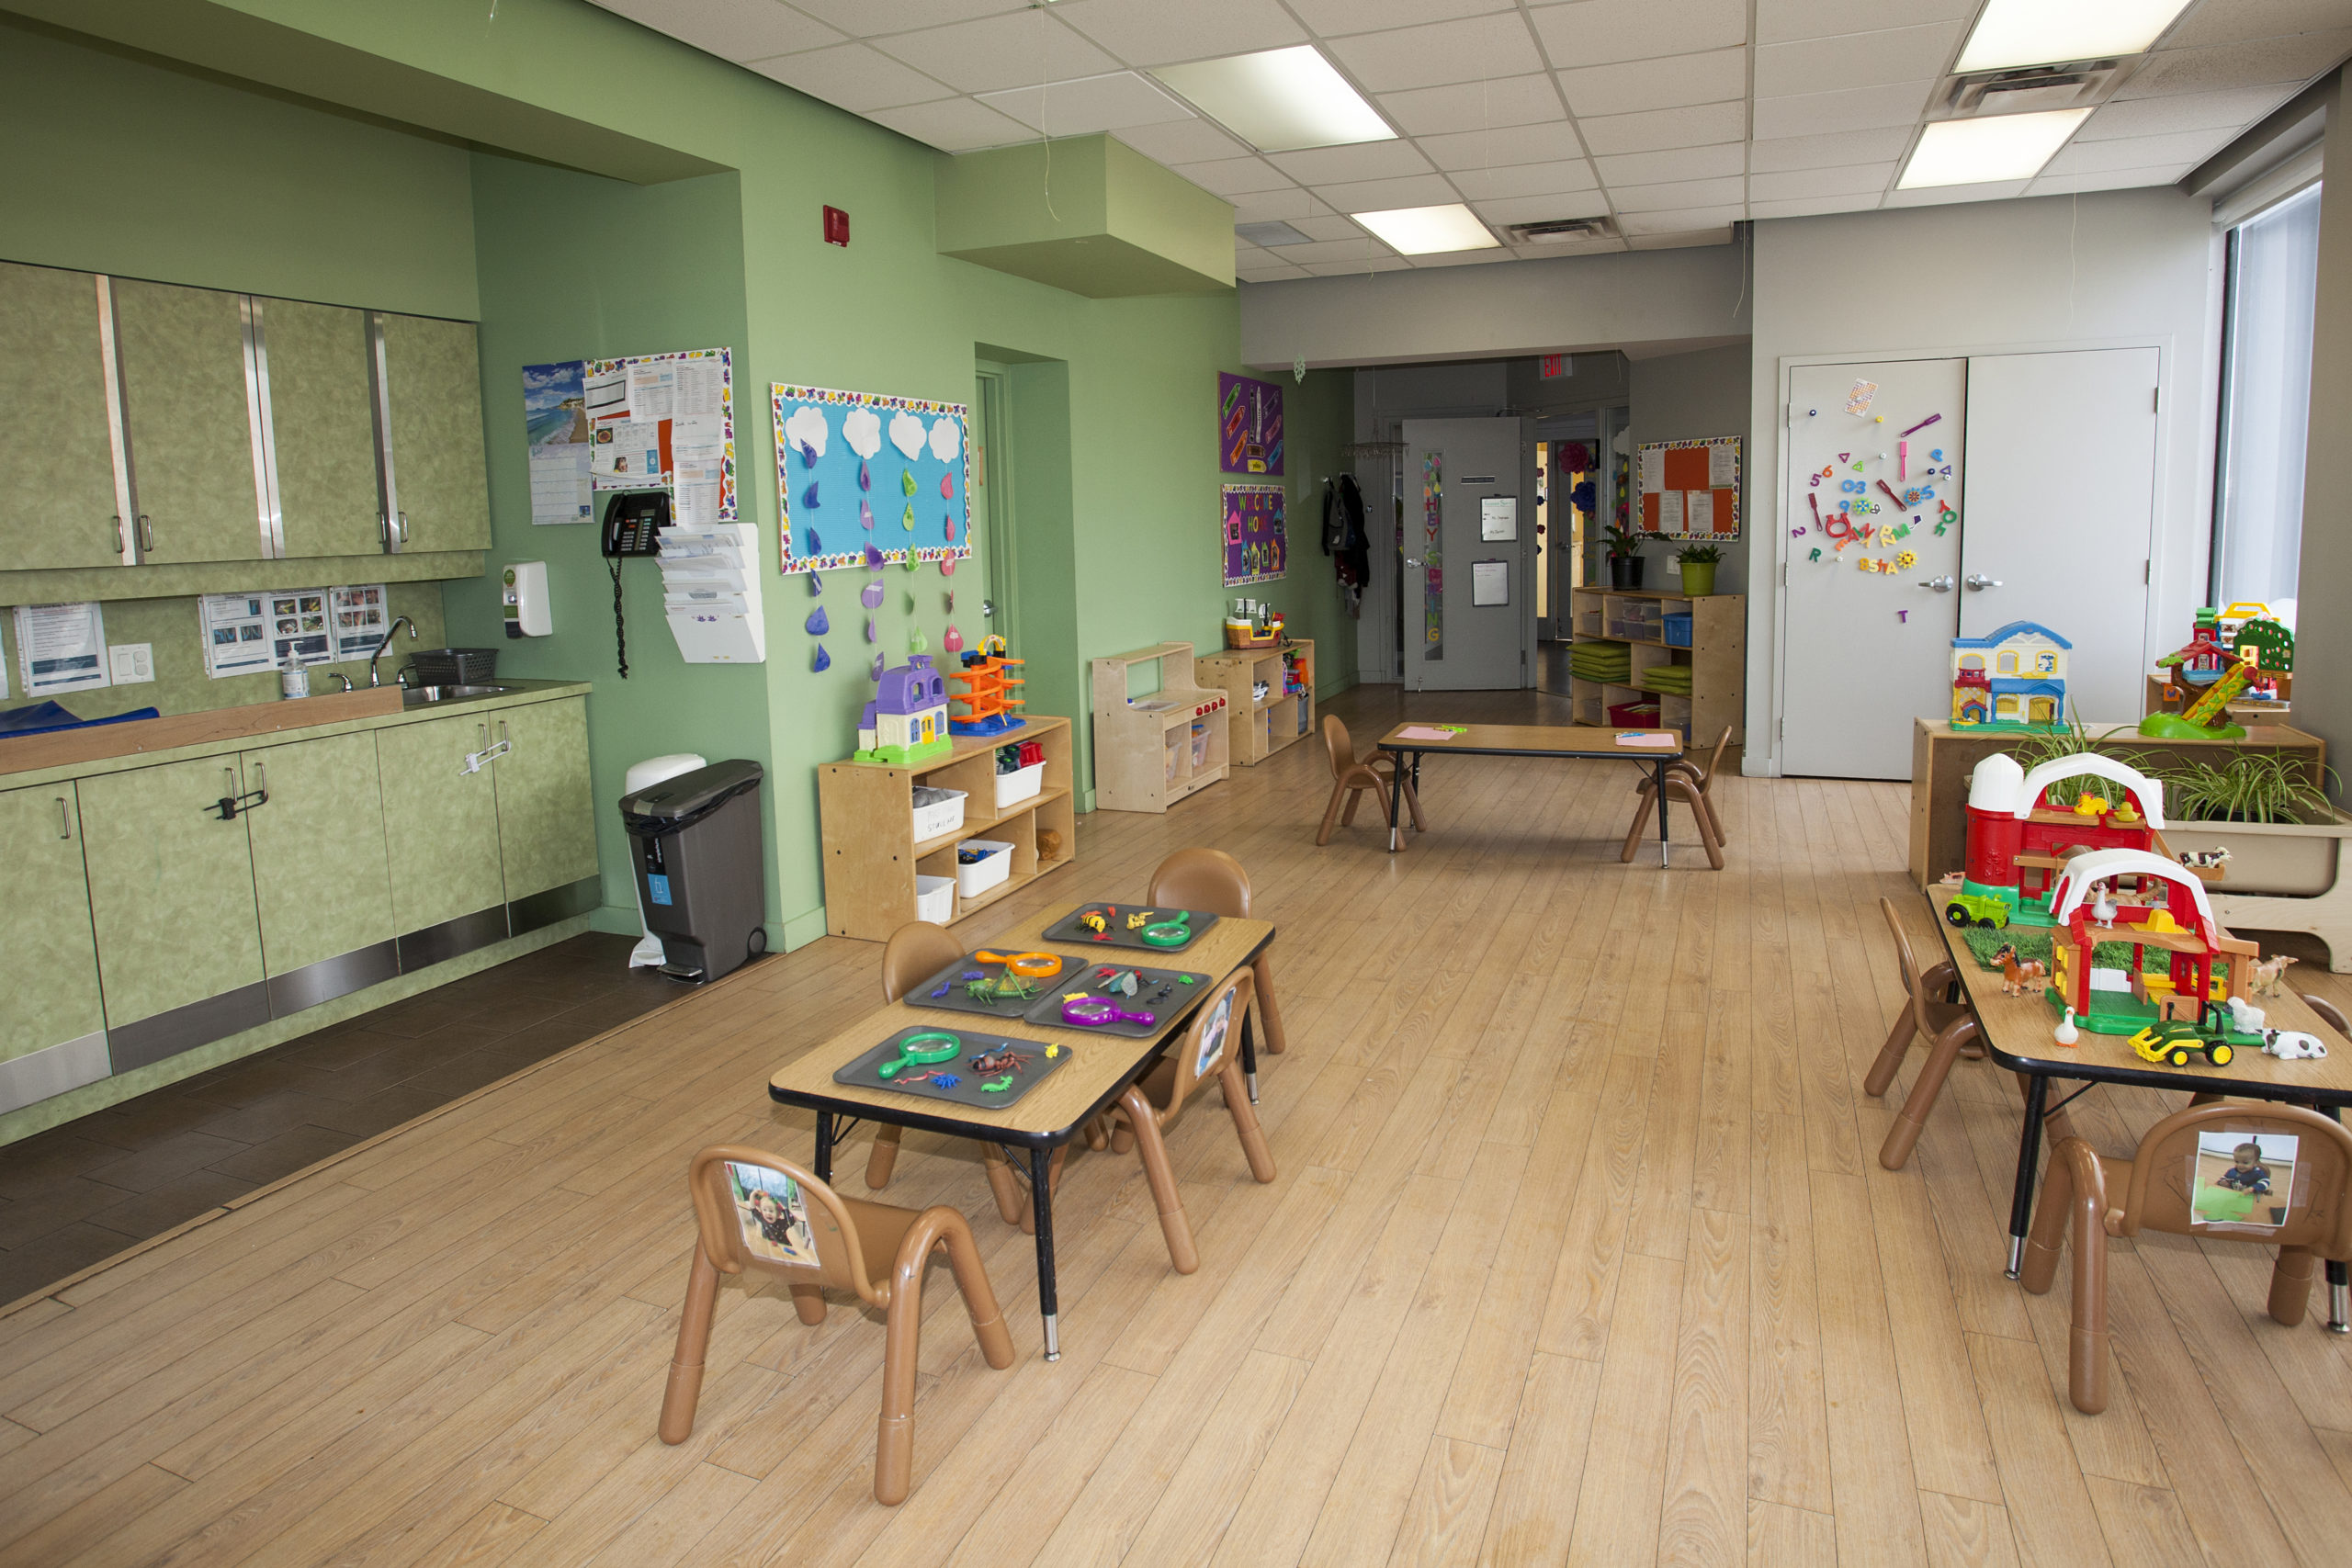 toddler classroom with tables